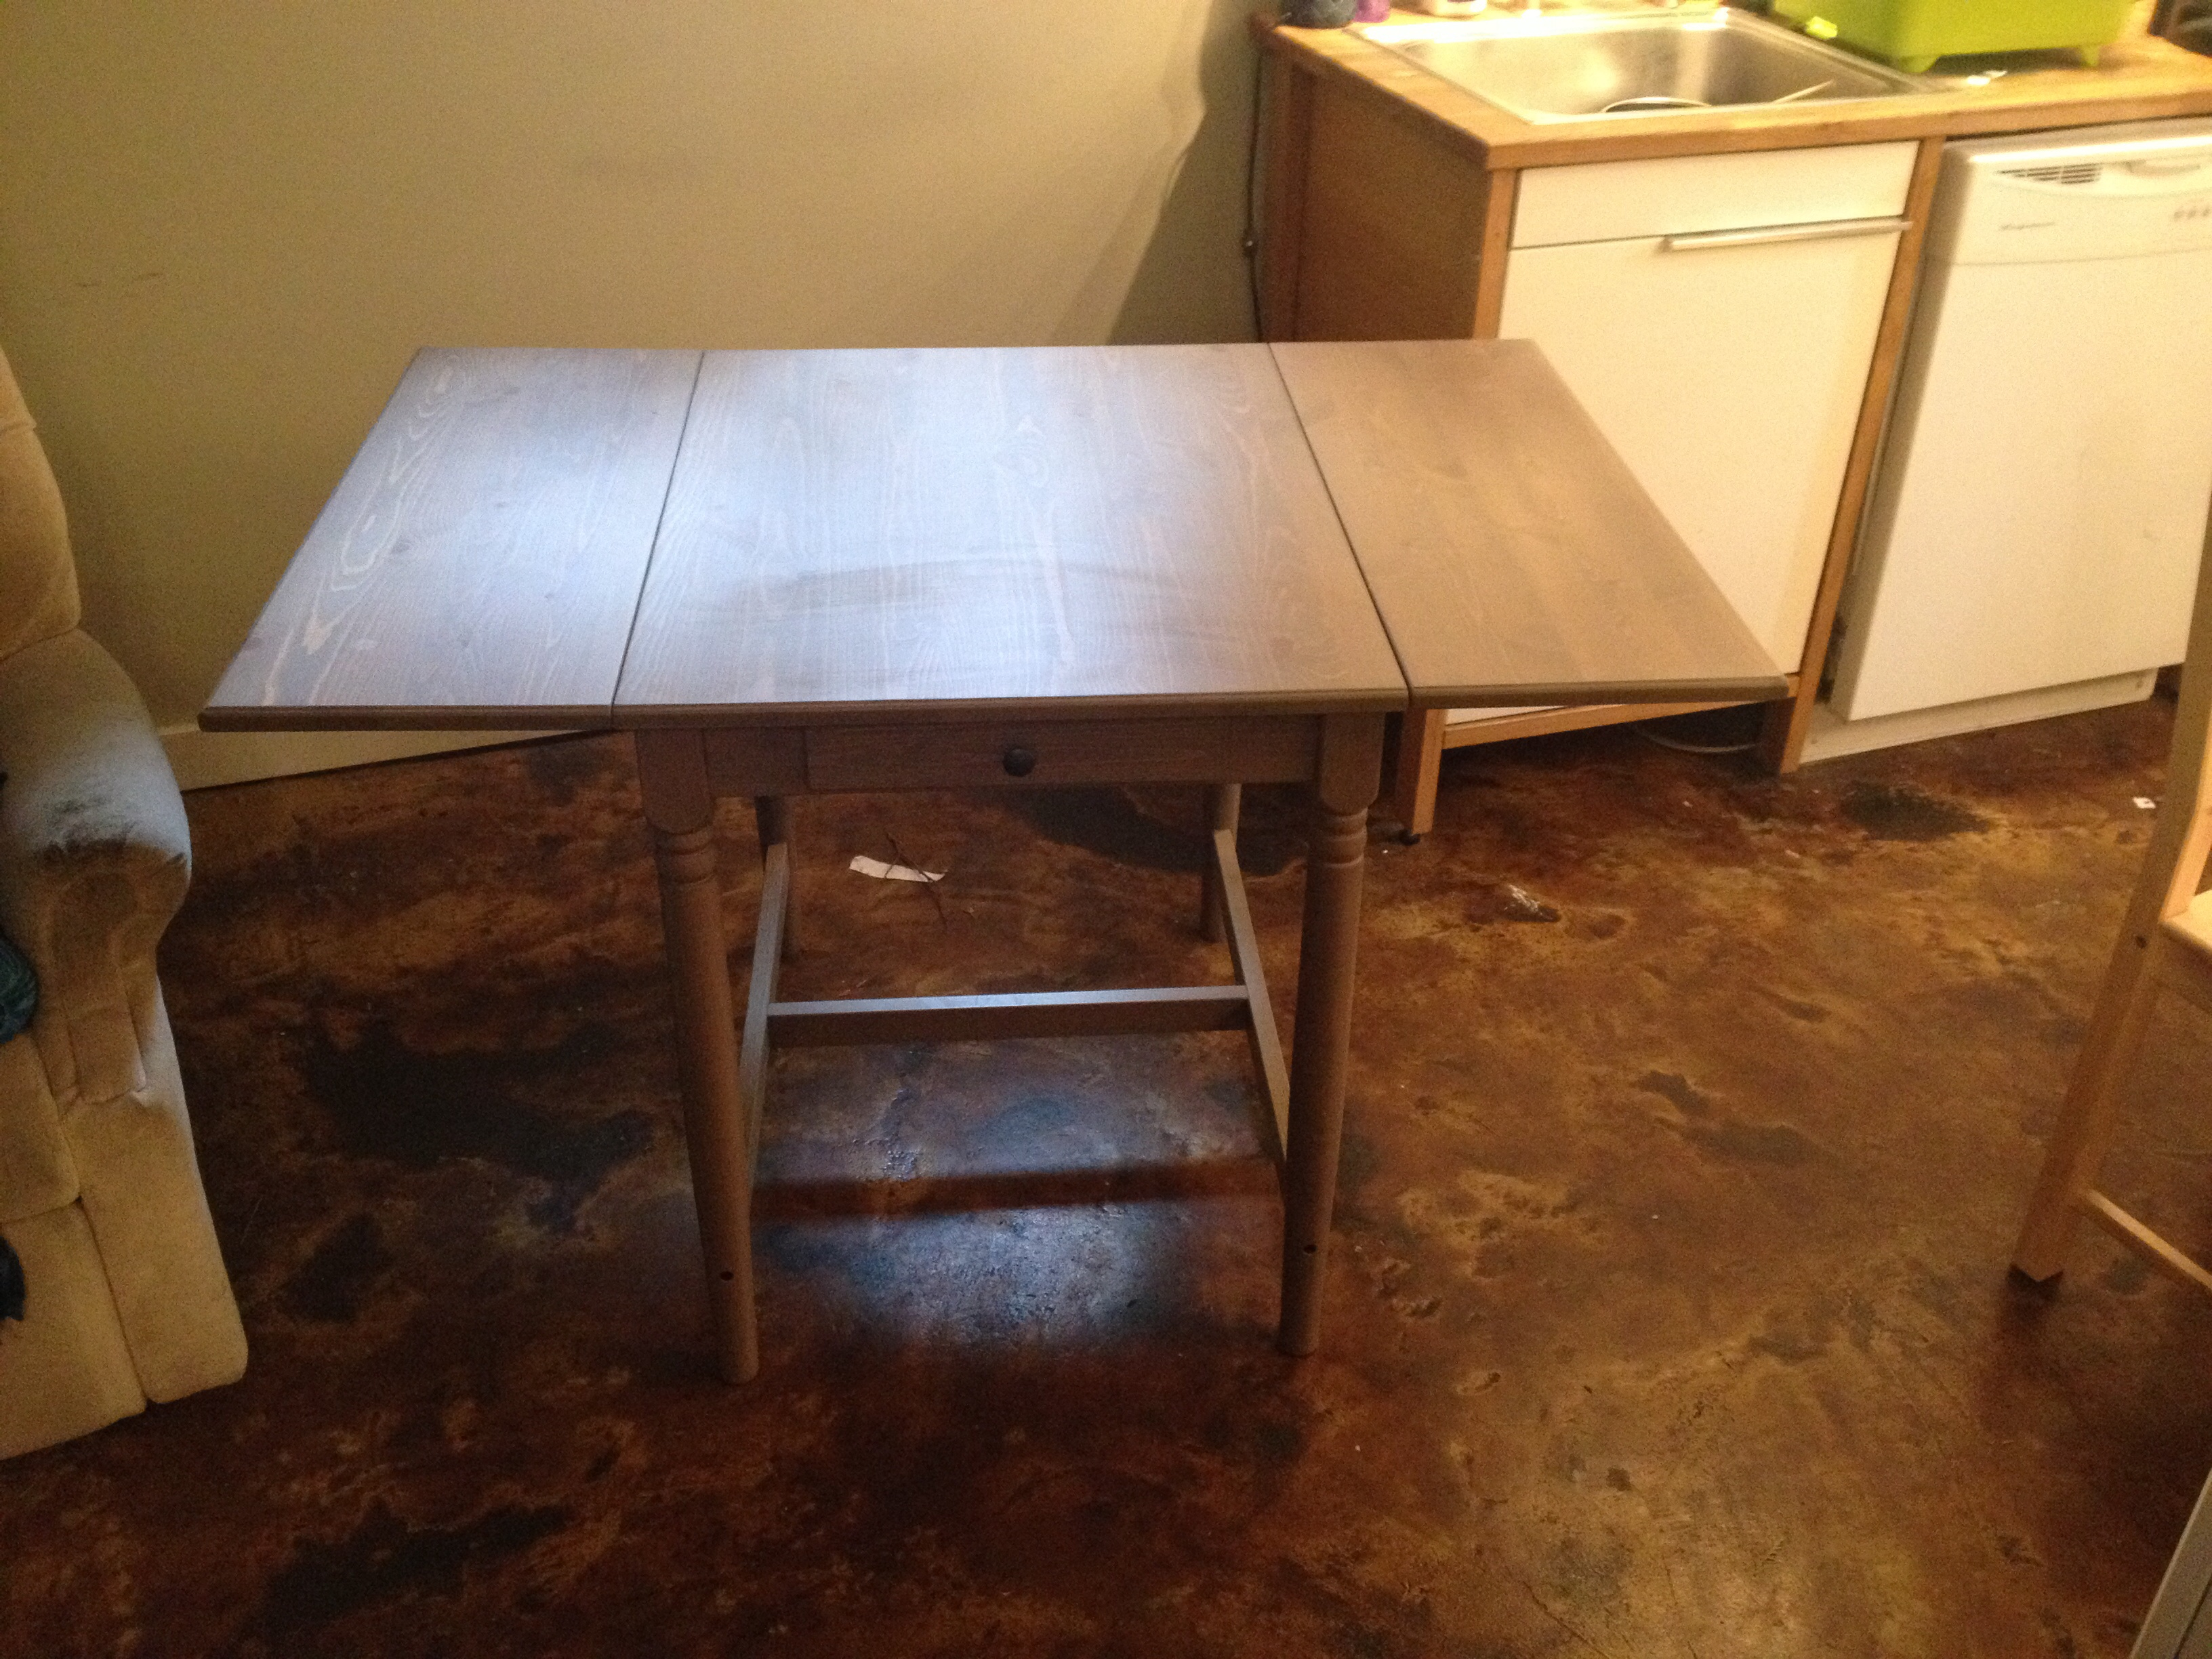 Ikea drop leaf table 100 obo shoreline lake forest park for Table 52 2014